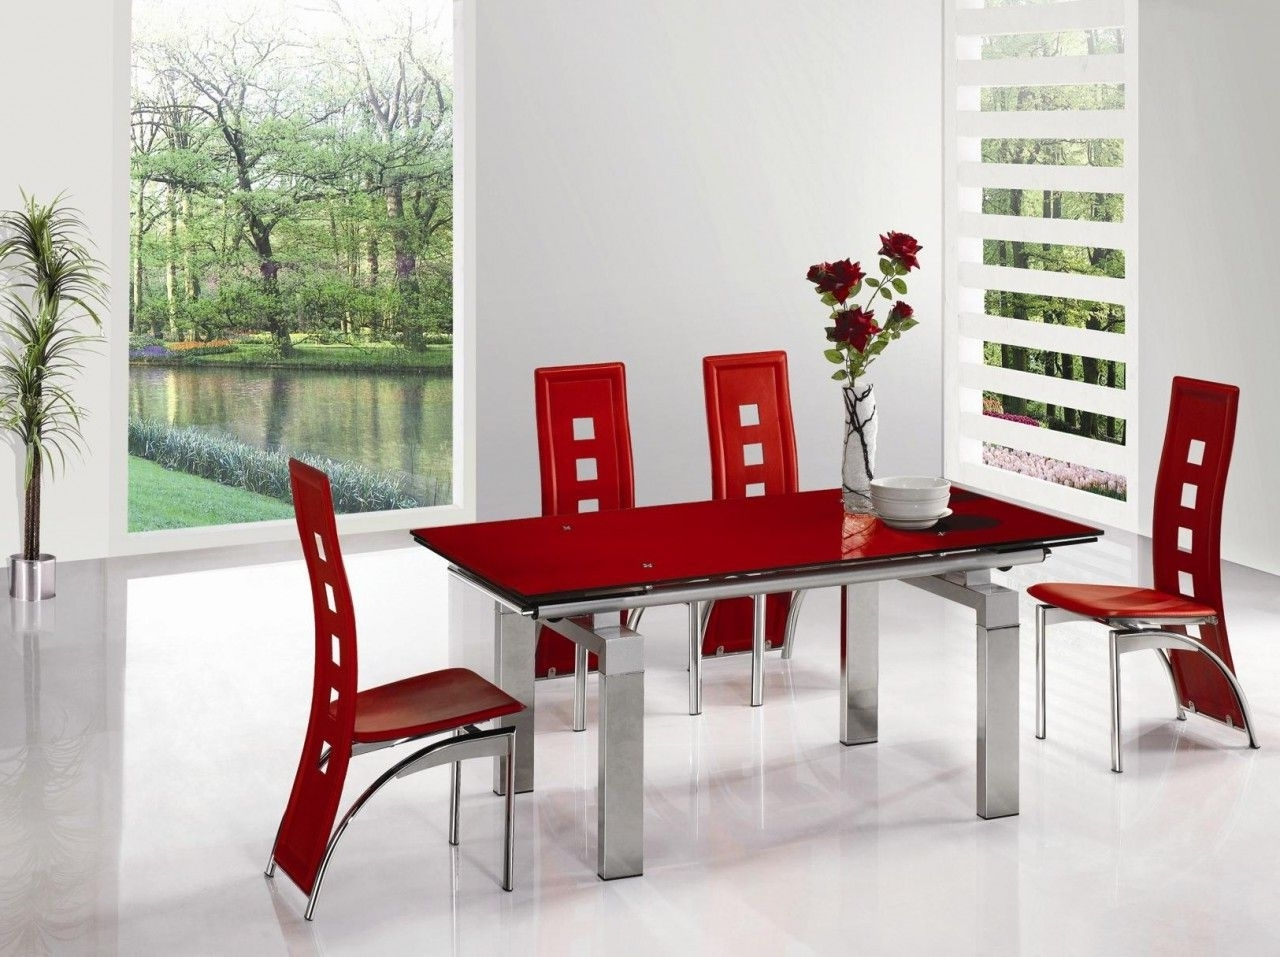 Red Dining Table Sets With Regard To Most Recently Released Red Dining Table And Chairs On Decorating Home Ideas Teetotal Red (View 20 of 25)